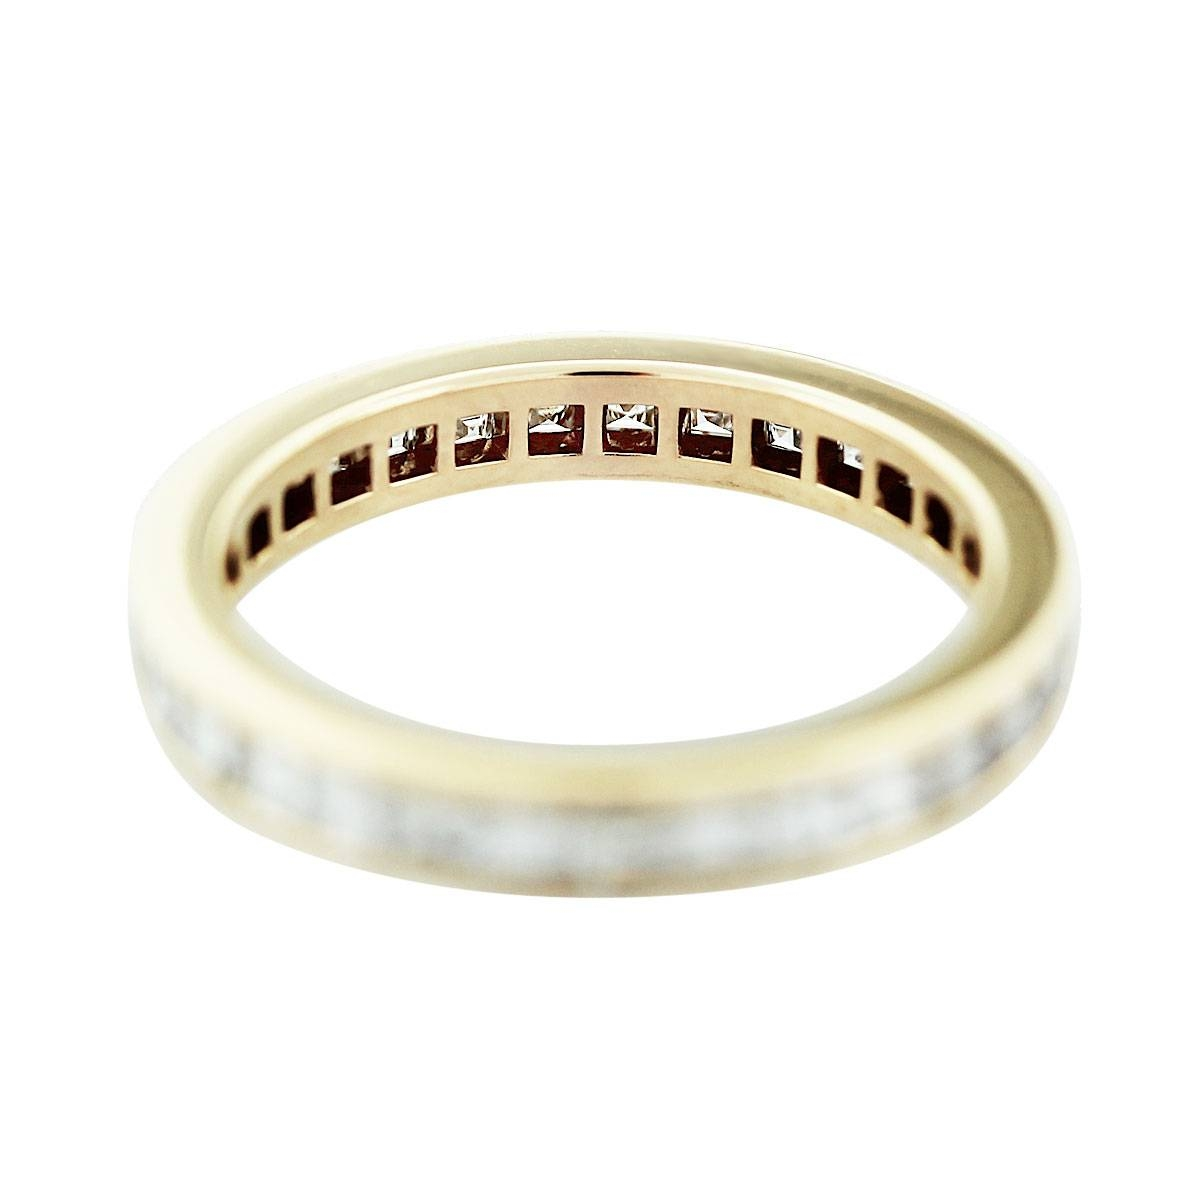 Cartier 18K Yellow Gold Asscher Cut Diamond Wedding Band Throughout Cartier Wedding Bands (View 6 of 15)